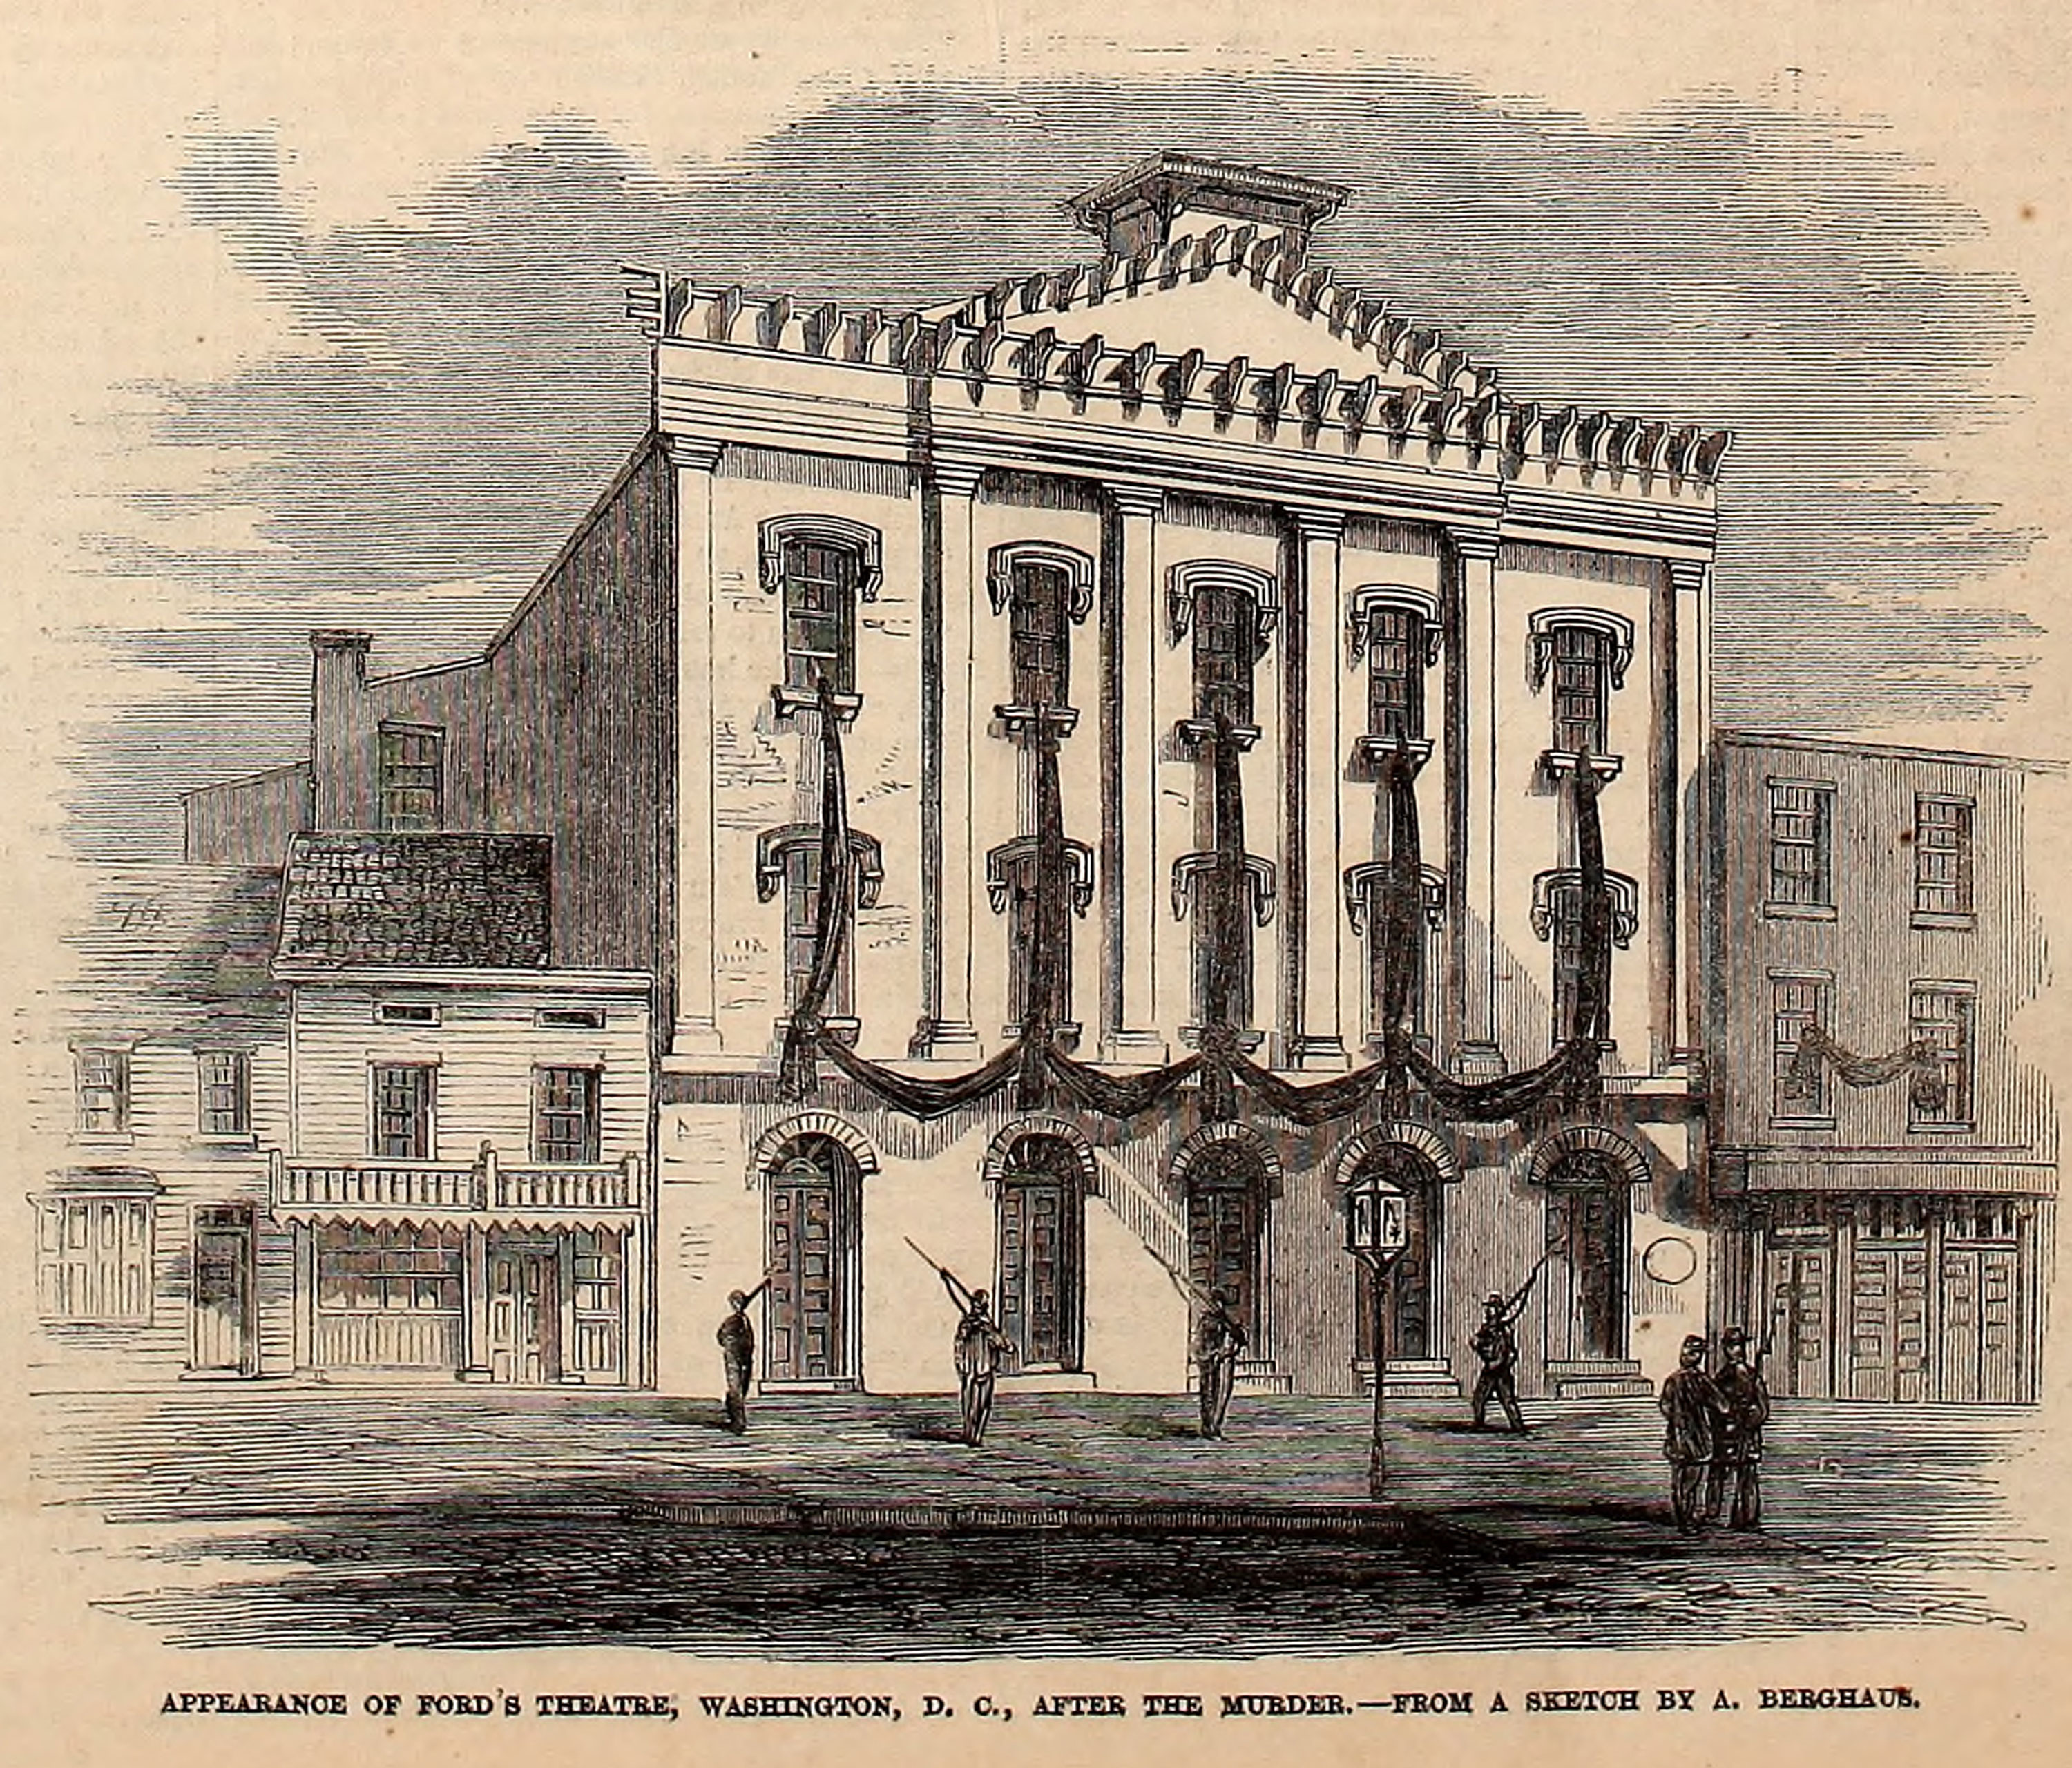 Illustration of Ford's Theatre with wide swaths of black fabric draped between its windows, in mourning the death of President Abraham Lincoln.